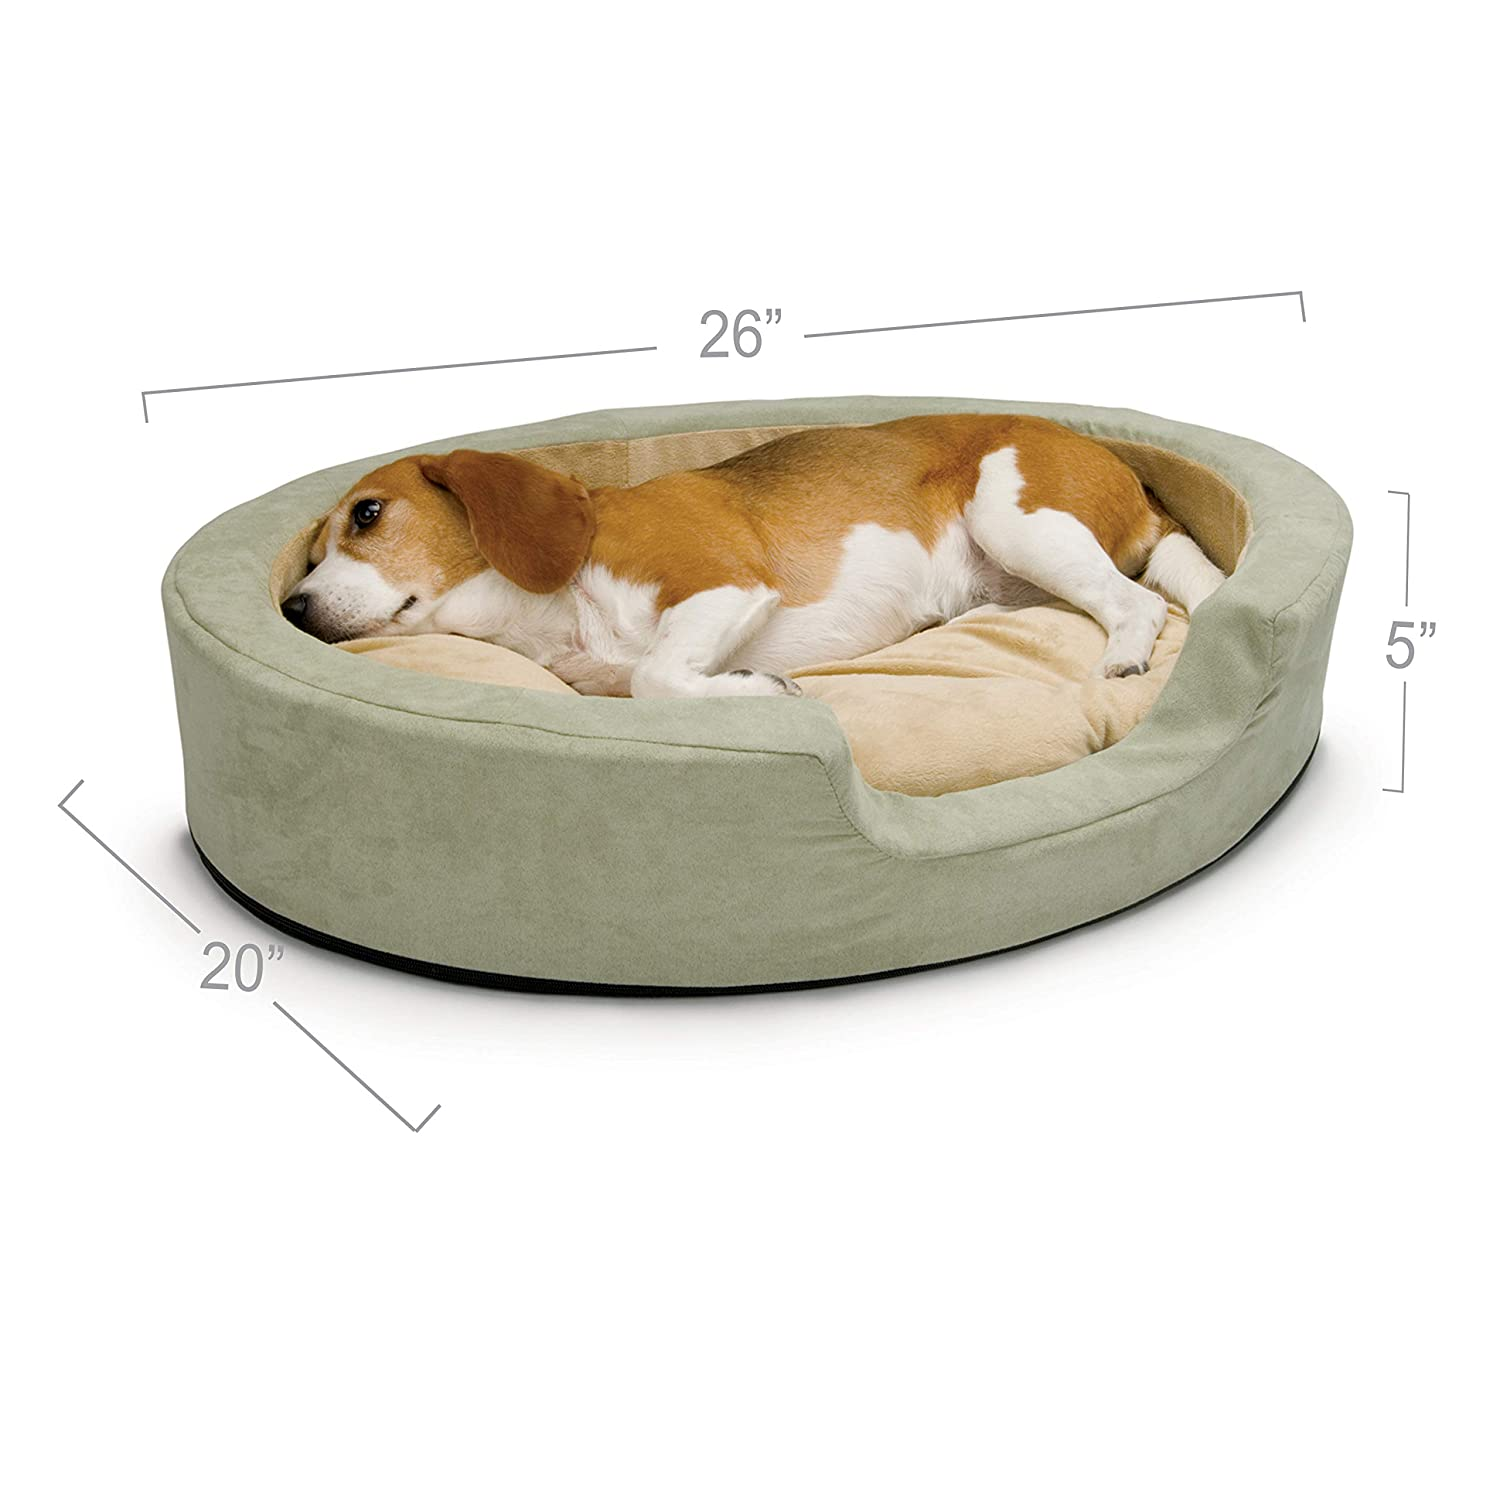 Amazon.com: K & H-Thermo Snuggly Sleeper - Cama para perro ...